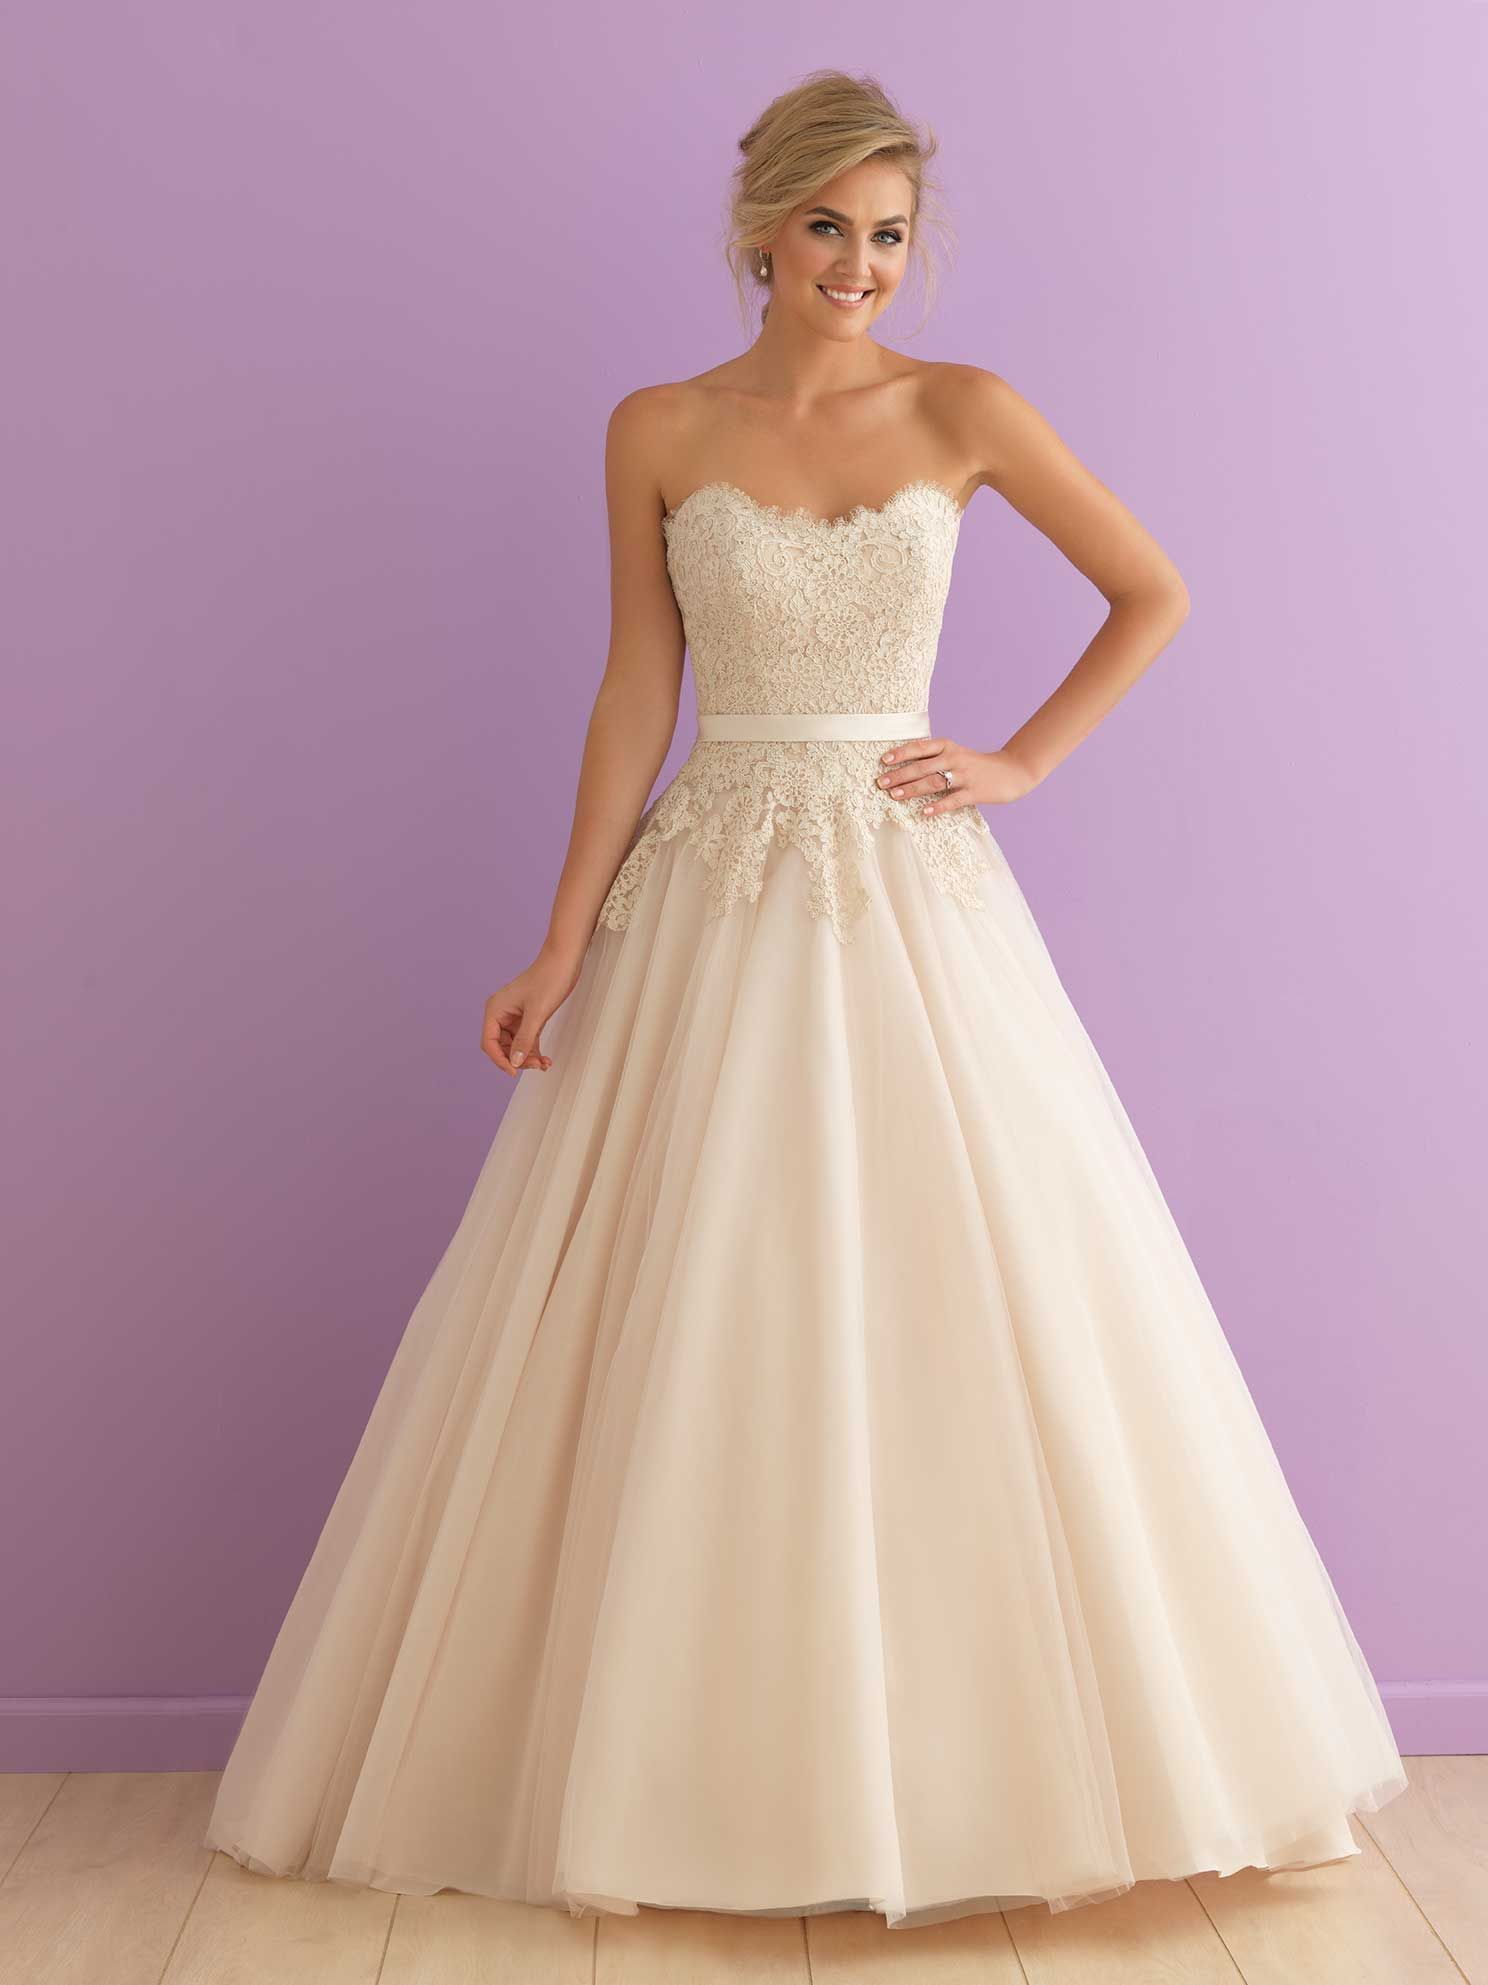 Allure Romance 2908. This ballgown is topped by a strapless lace ...